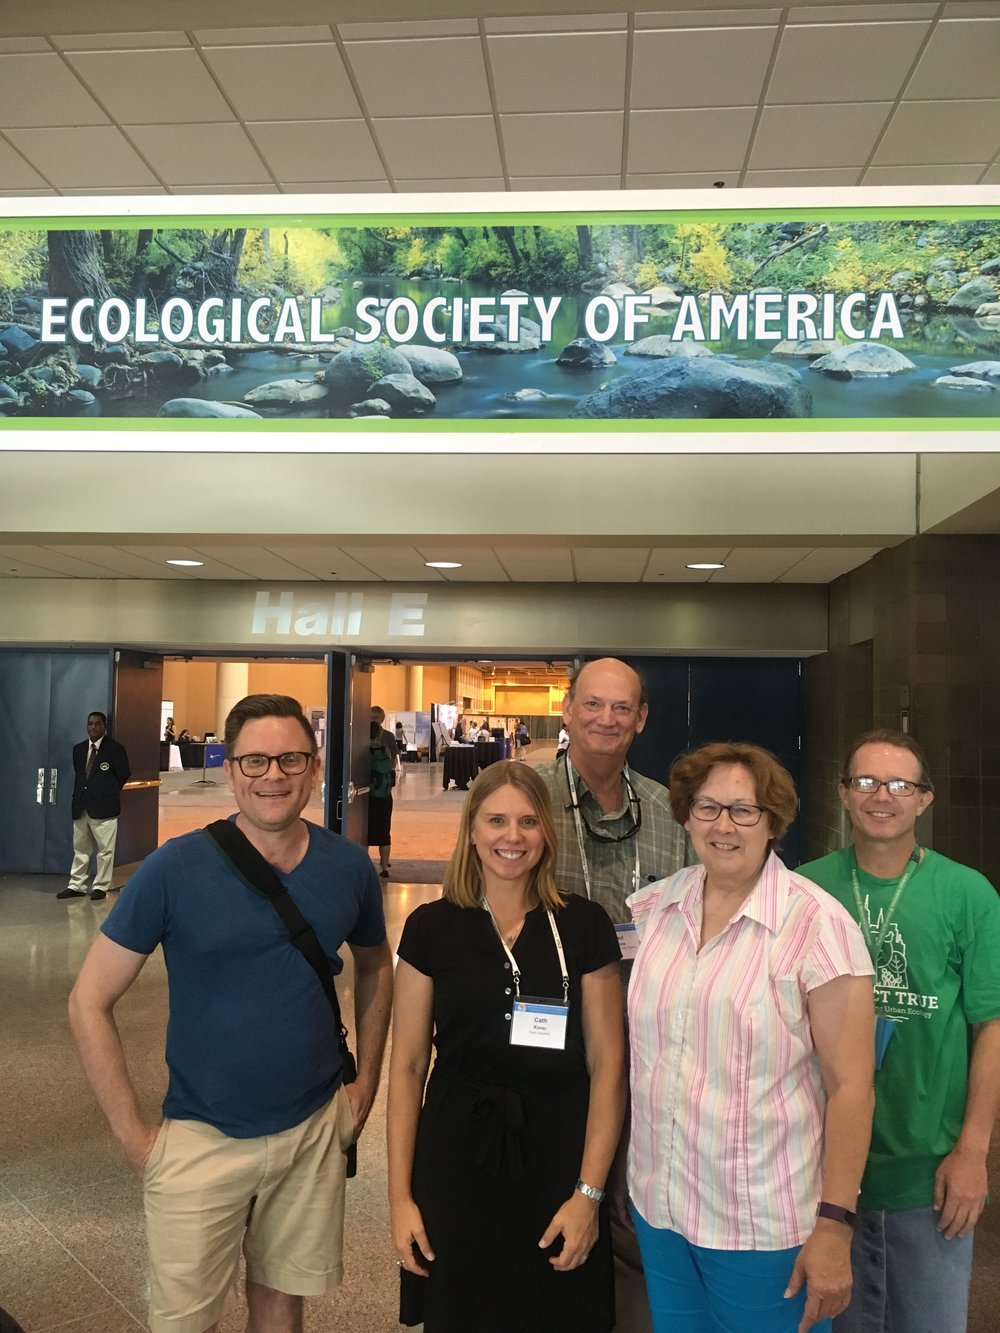 Faculty members together at the Ecological Society of America meeting. Photo featured courtesy of Cath Kleier